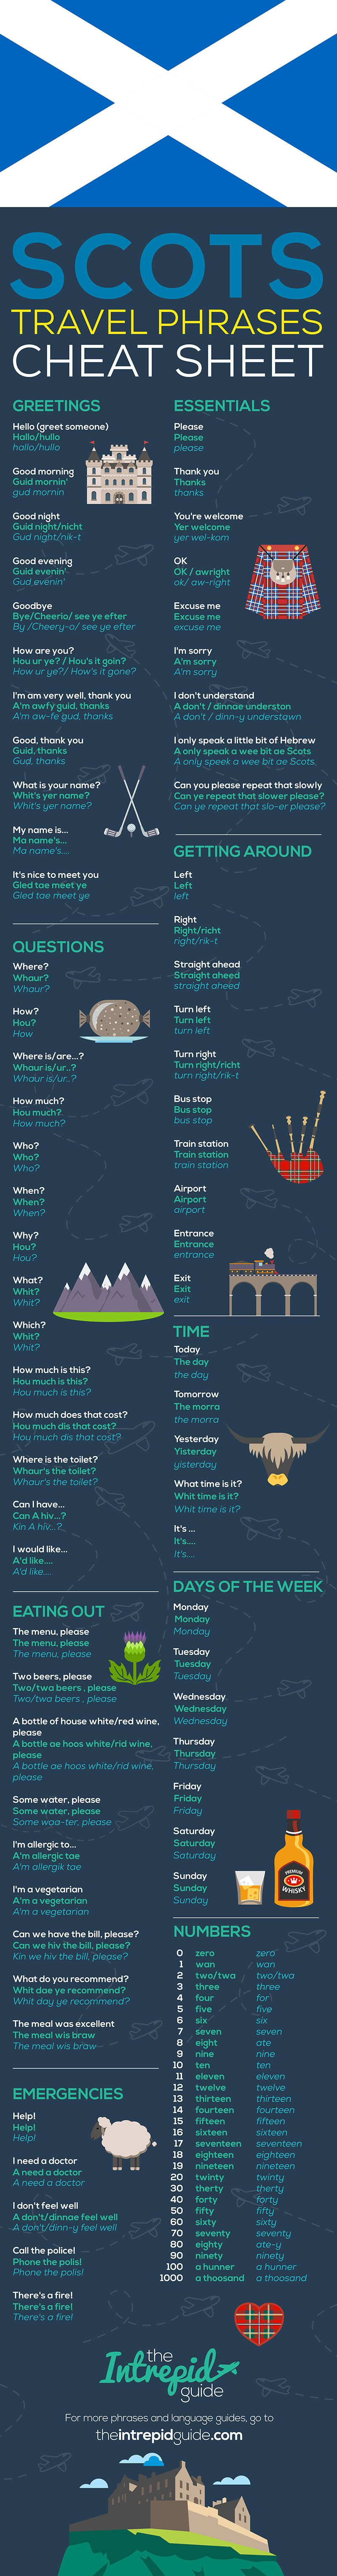 100 Useful Scots Language Phrases For Travel Audio Included The Intrepid Guide Future Timeline Far Future Space And Astronomy